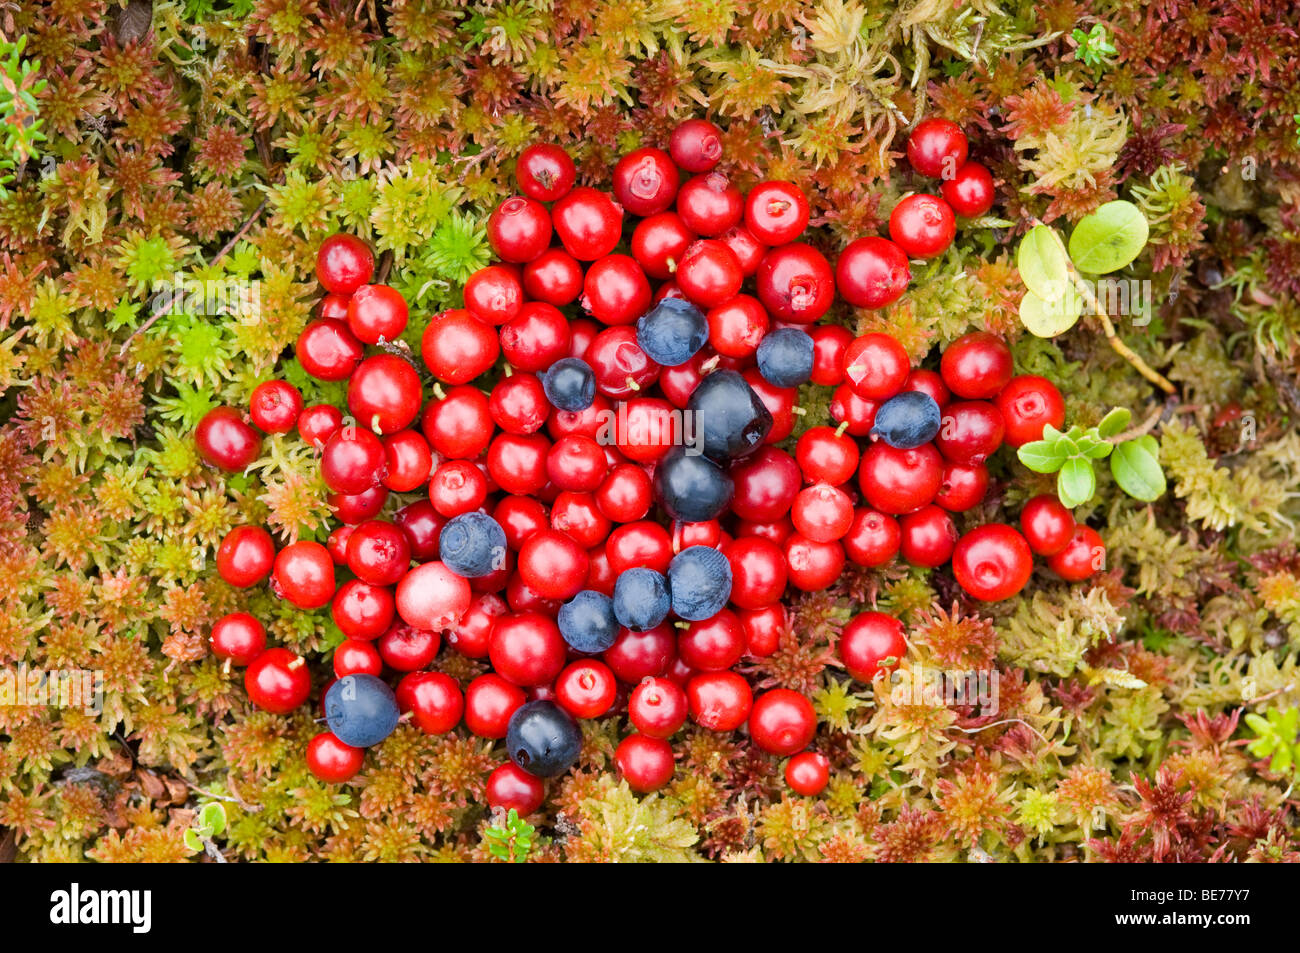 Wild food. Red berries/ fruits of Cowberry, or Lingonberry ...